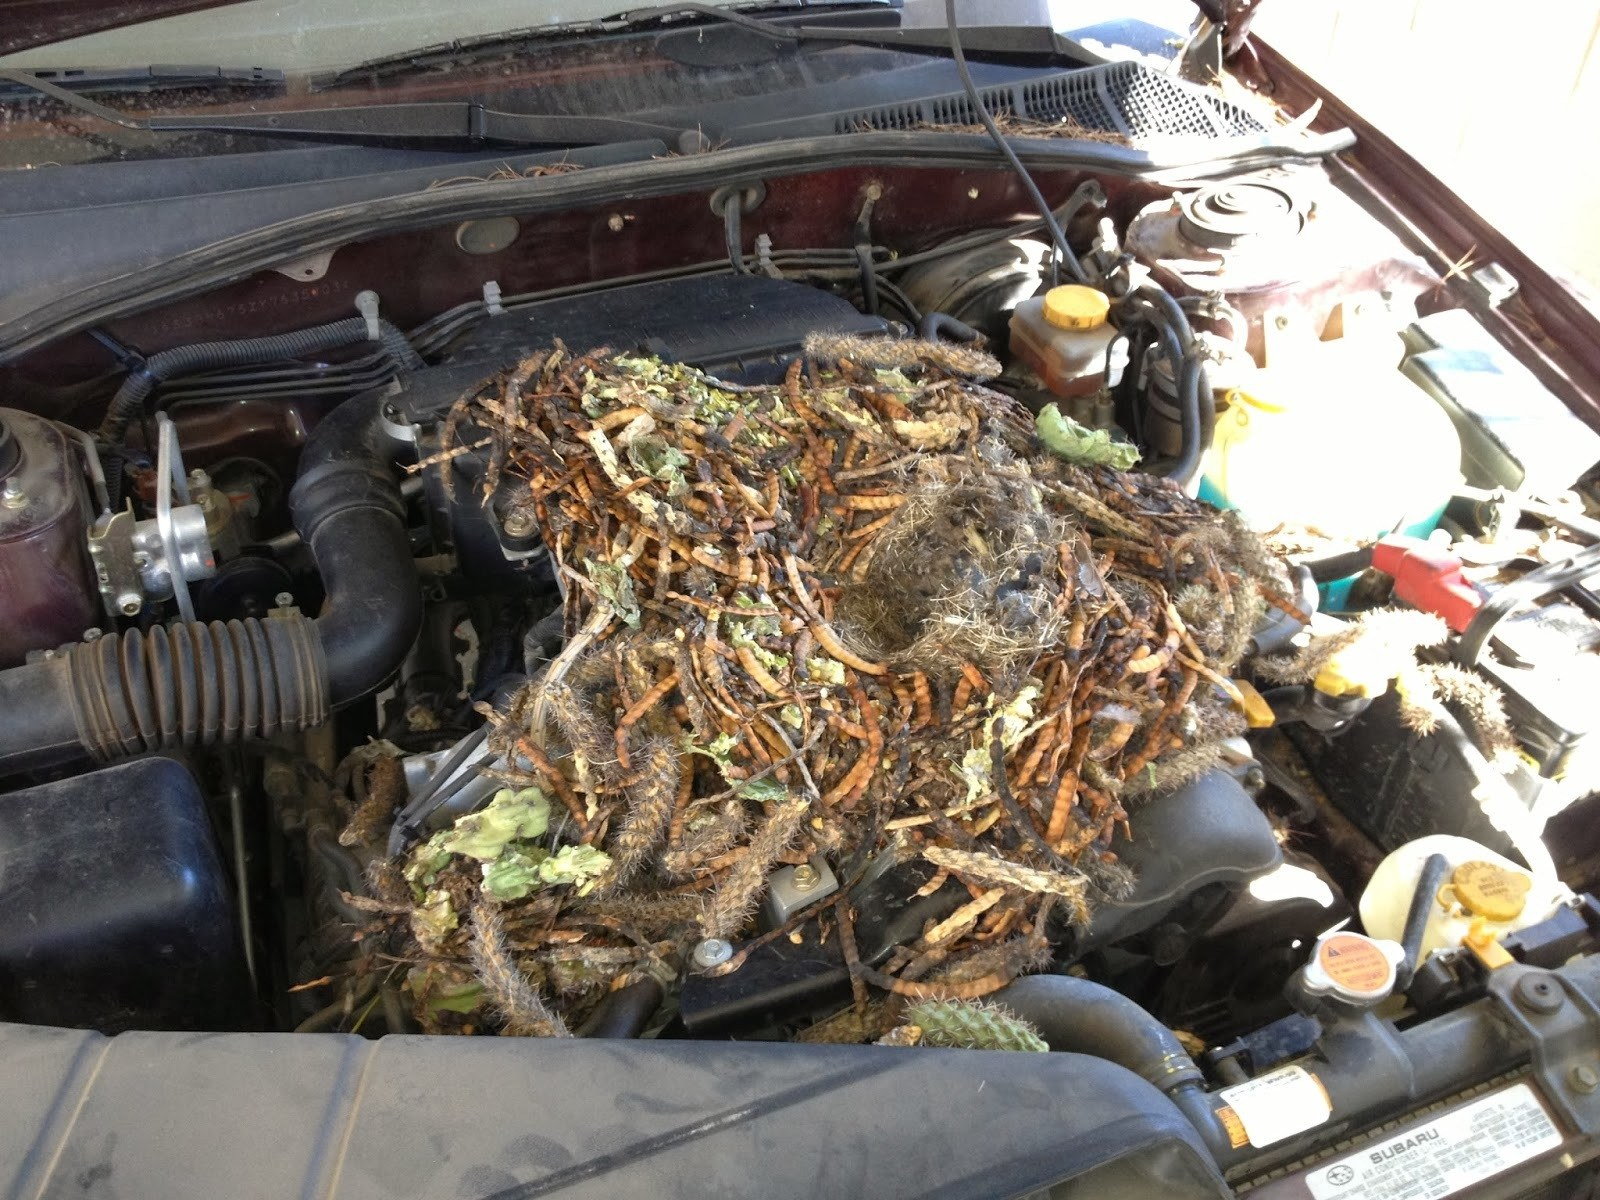 How-To-Stop-Rats-Mice-And-Other-Rodents-Eating-Car-Wiring-Nest-in-Car